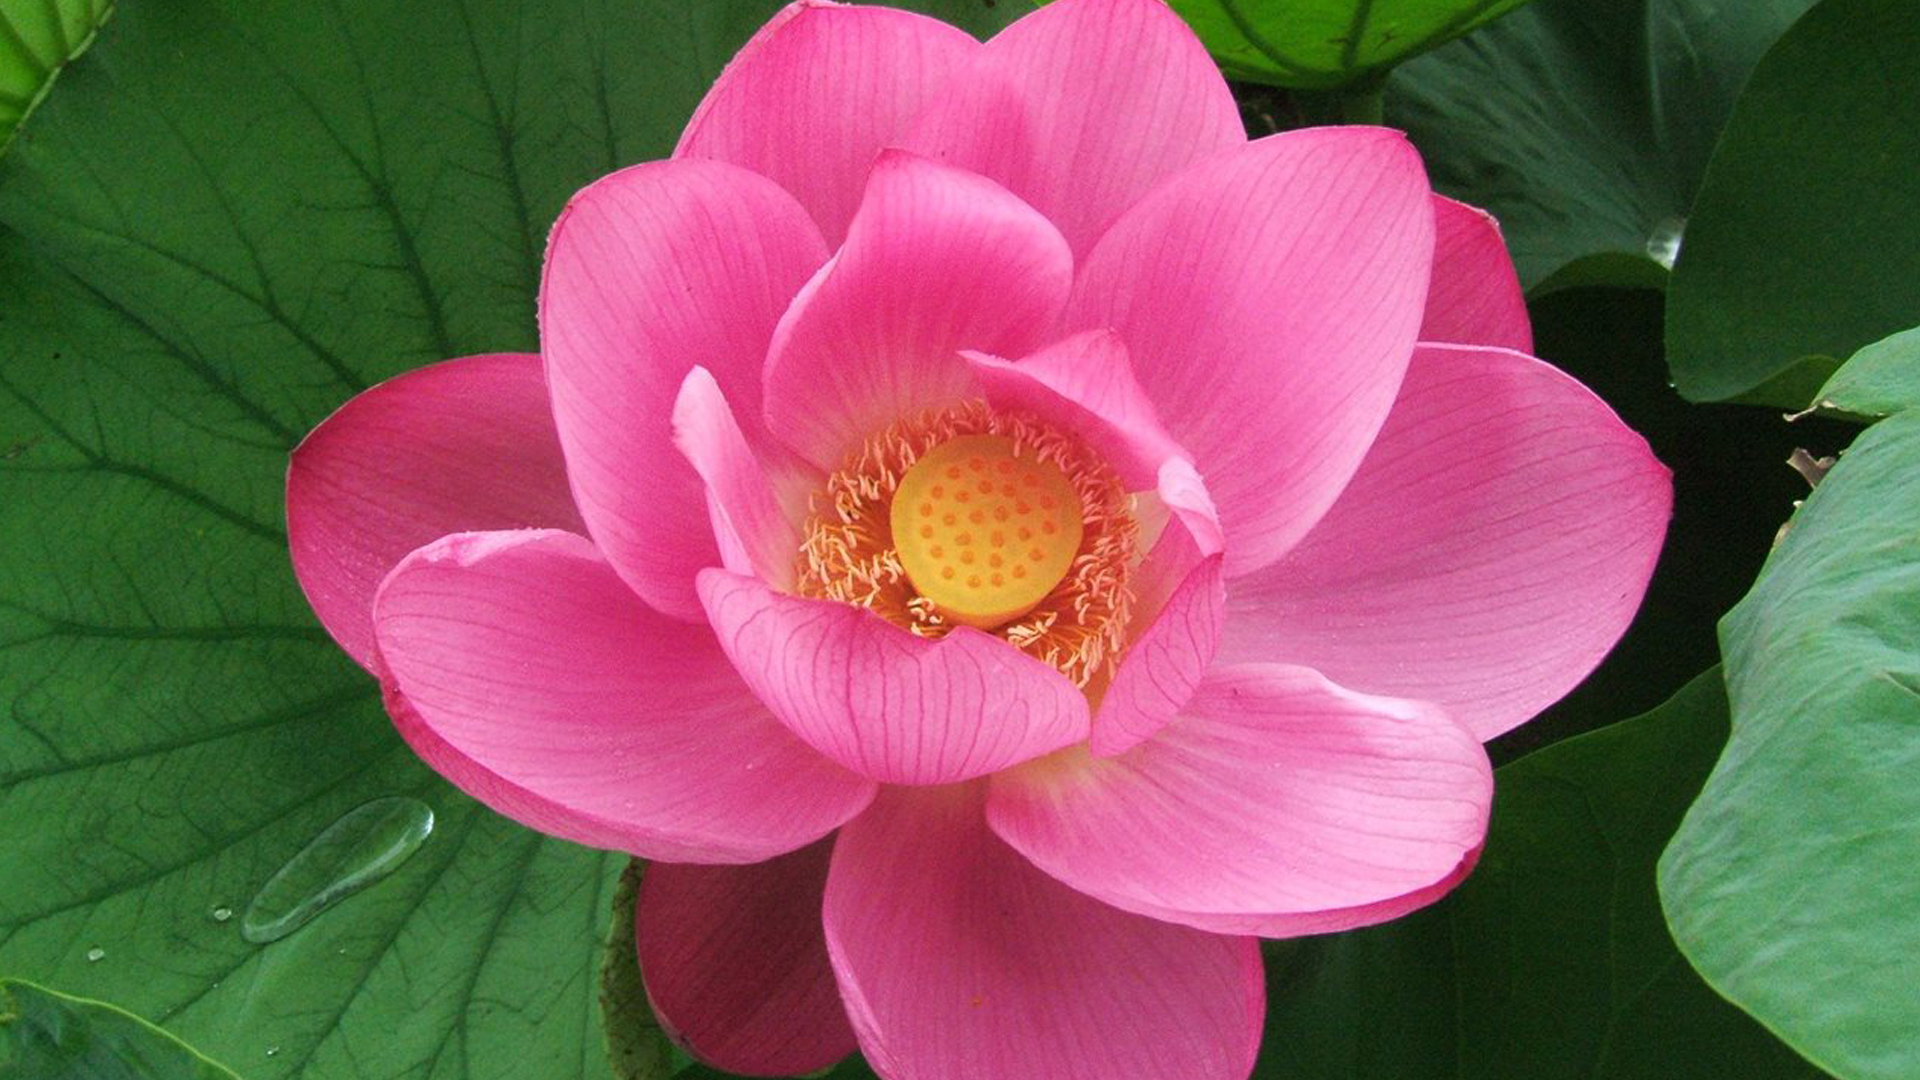 Hd Close Up Picture Of Pink Lotus Flower For Desktop Background Hd